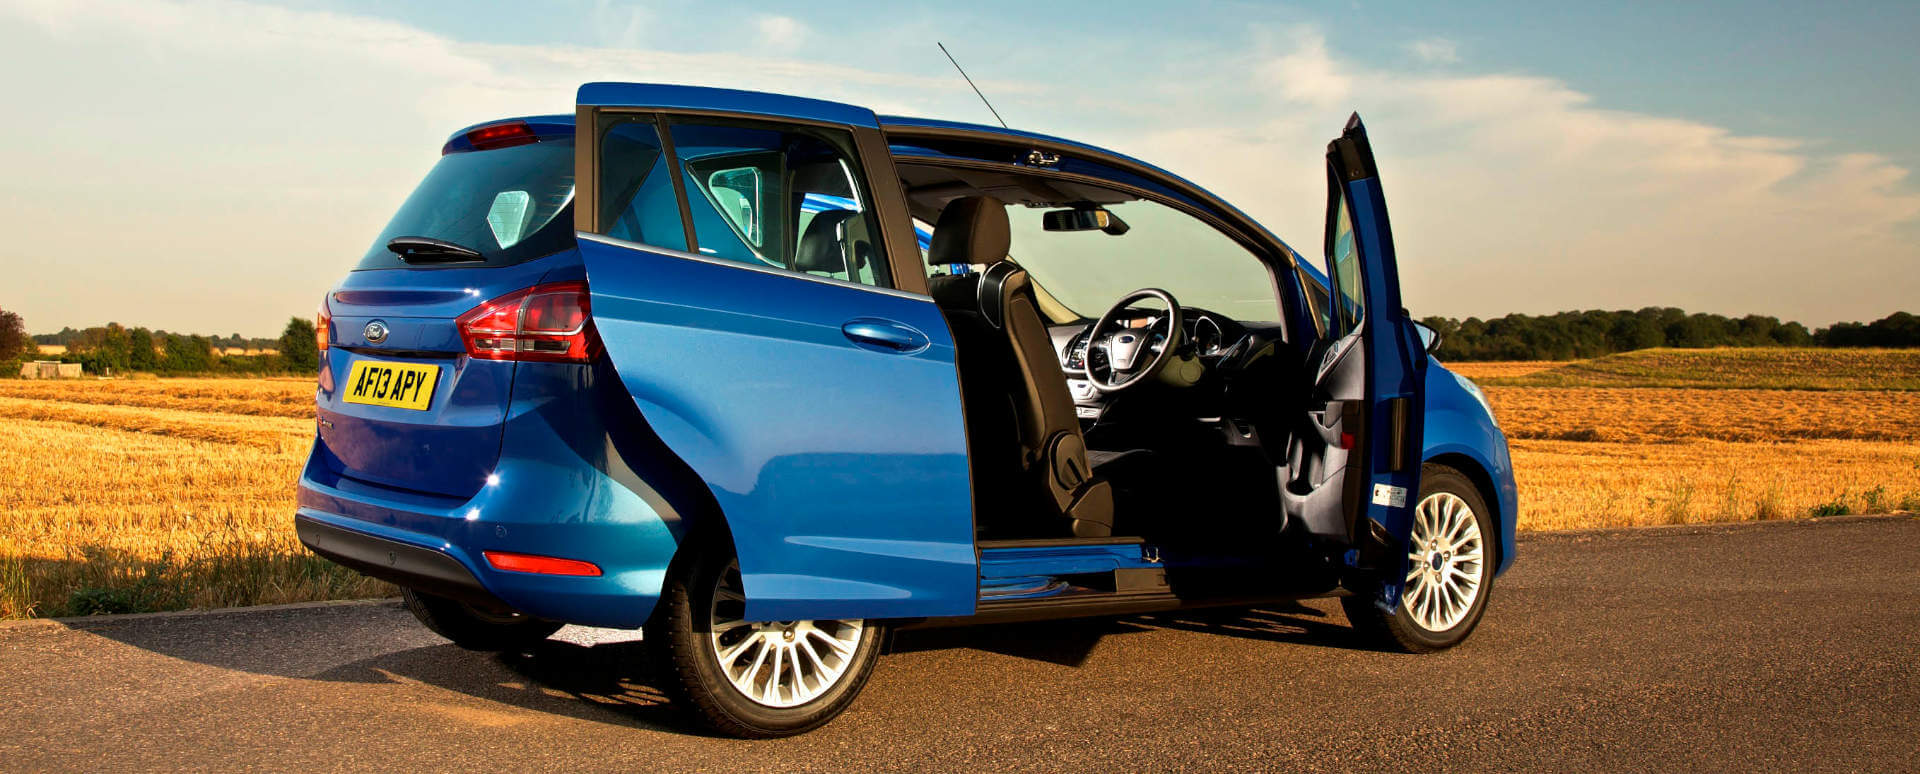 Ford B-MAX with Sliding Doors